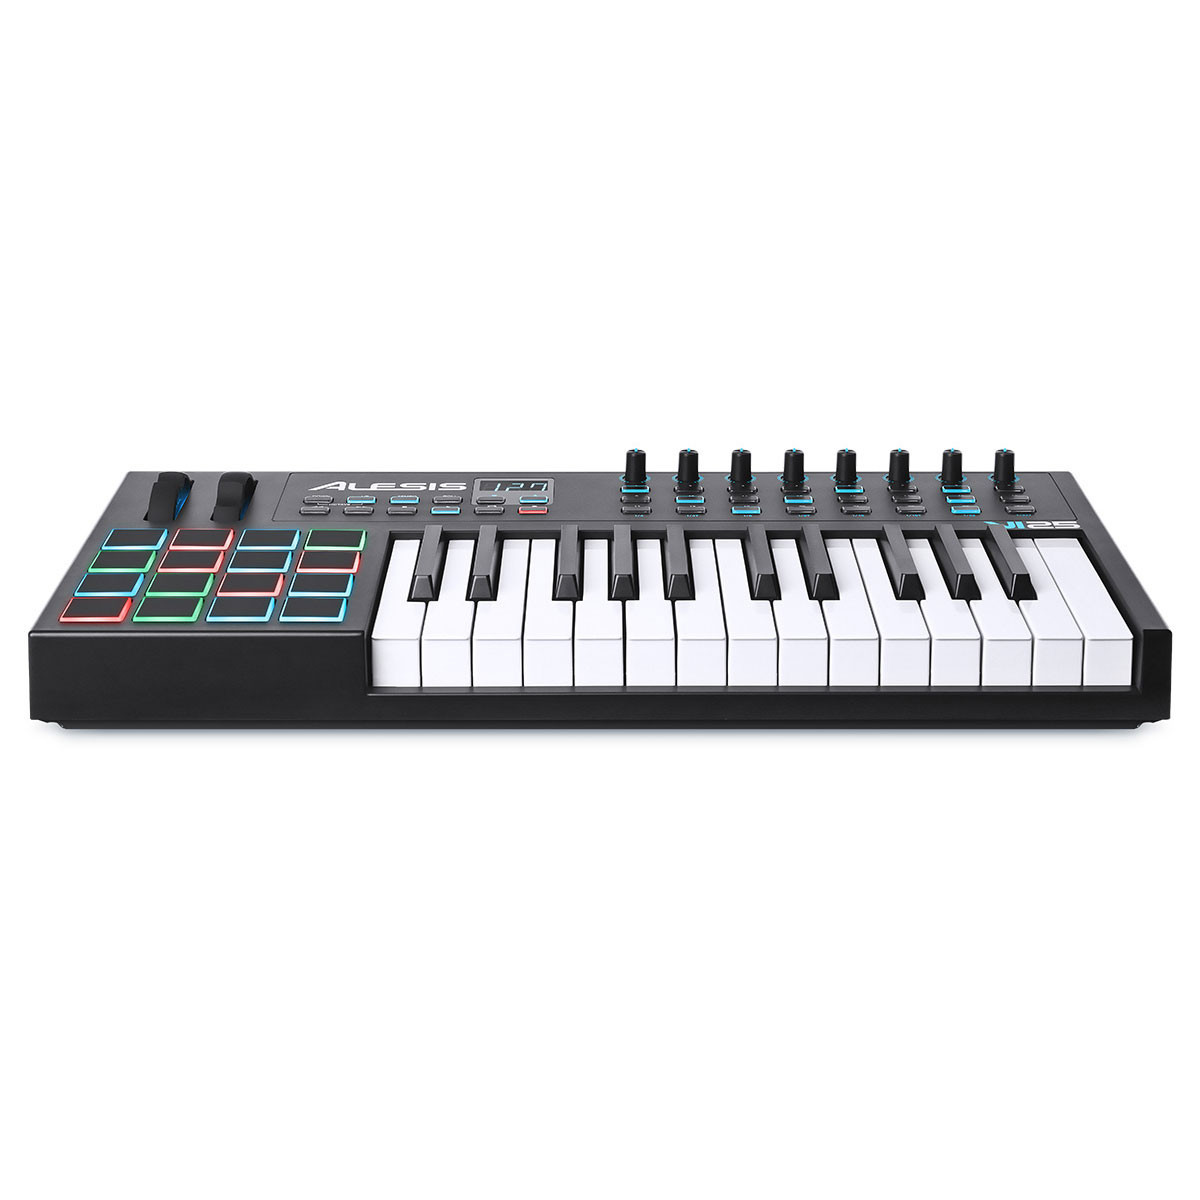 alesis vi25 midi keyboard controller nearly new at. Black Bedroom Furniture Sets. Home Design Ideas